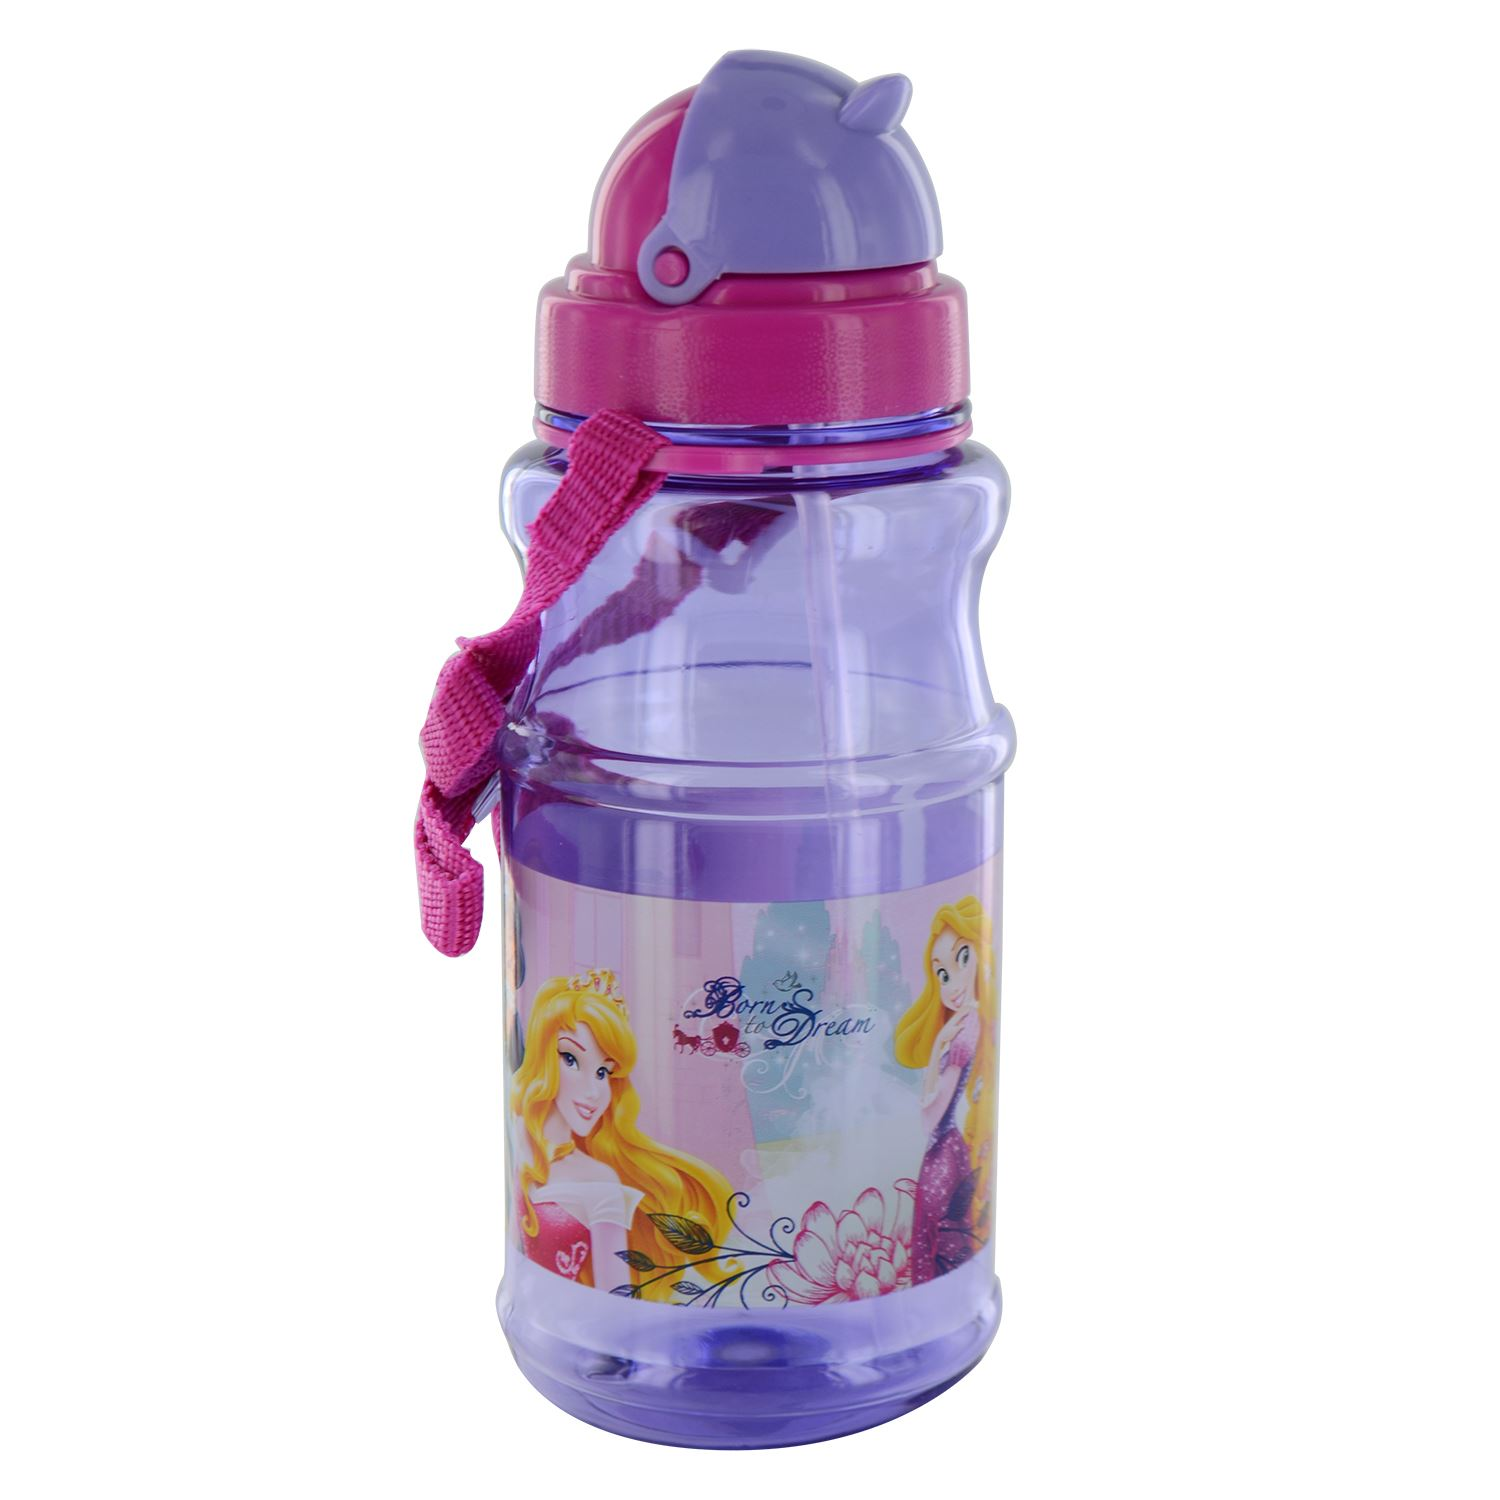 Kids Childs Drinking Bottle Folding Straw School Childrens Cup Sippy Drink